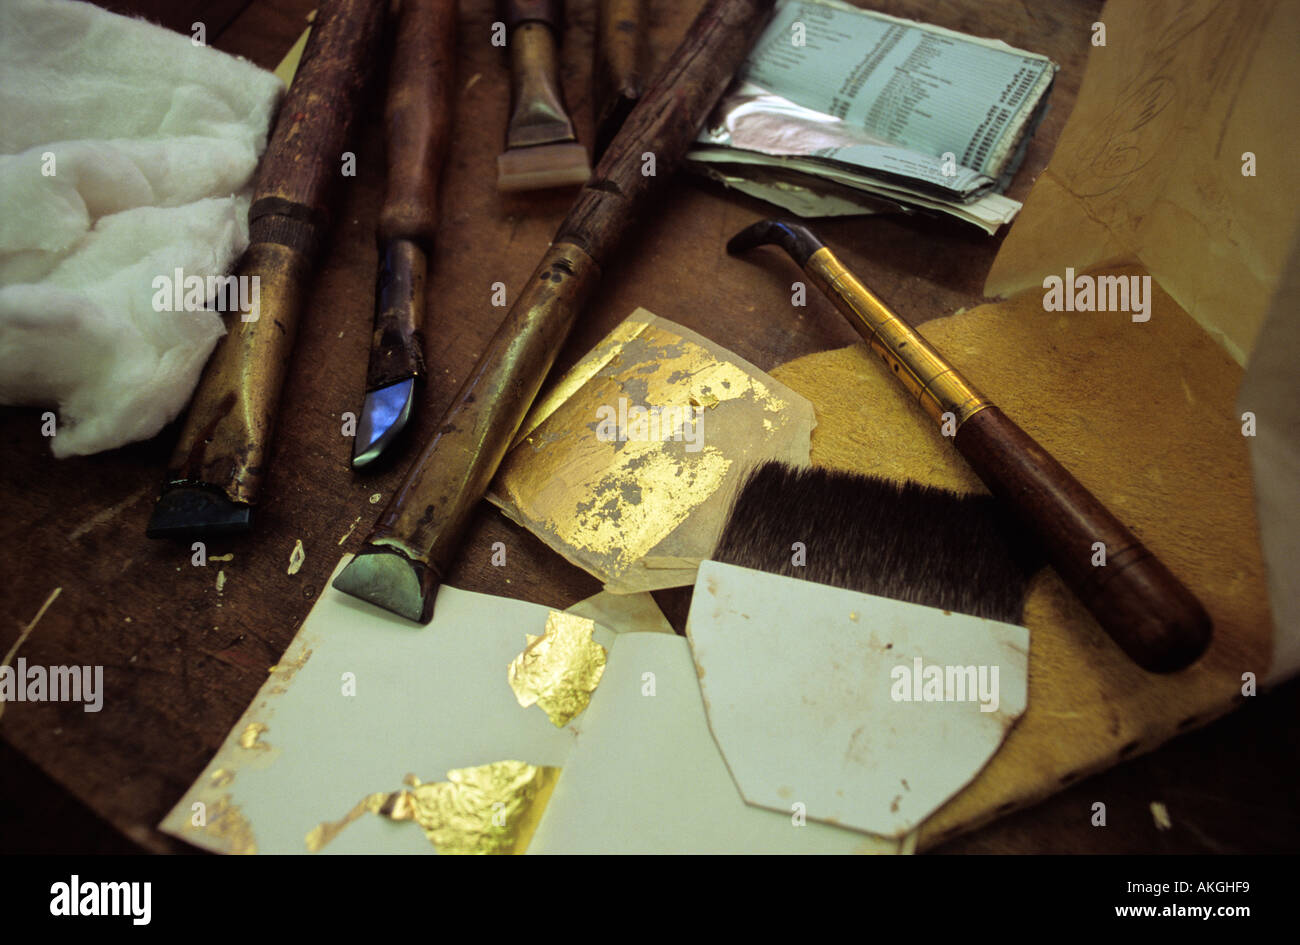 Gold leaf tools - Stock Image